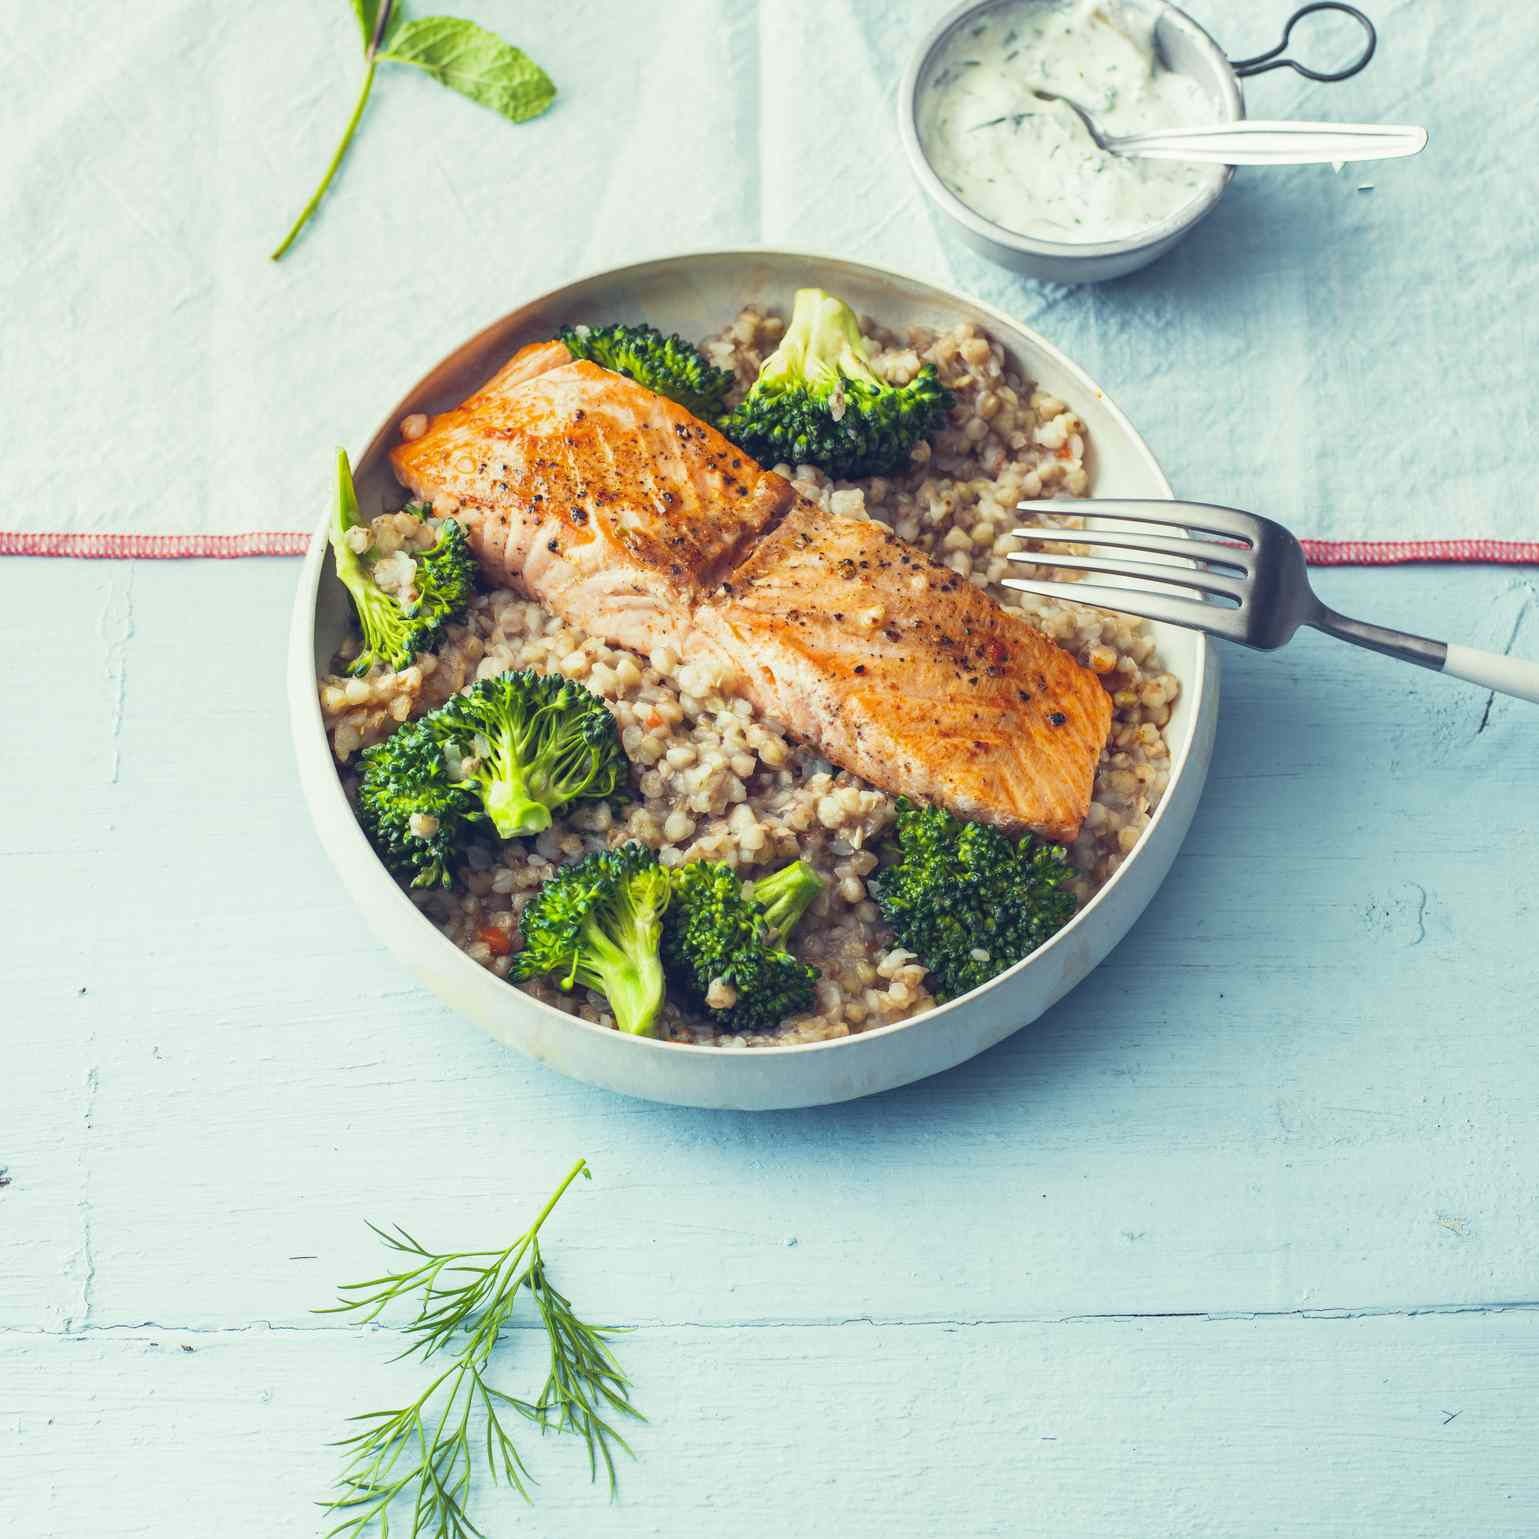 salmon with buckwheat pilaf and broccoli in a bowl